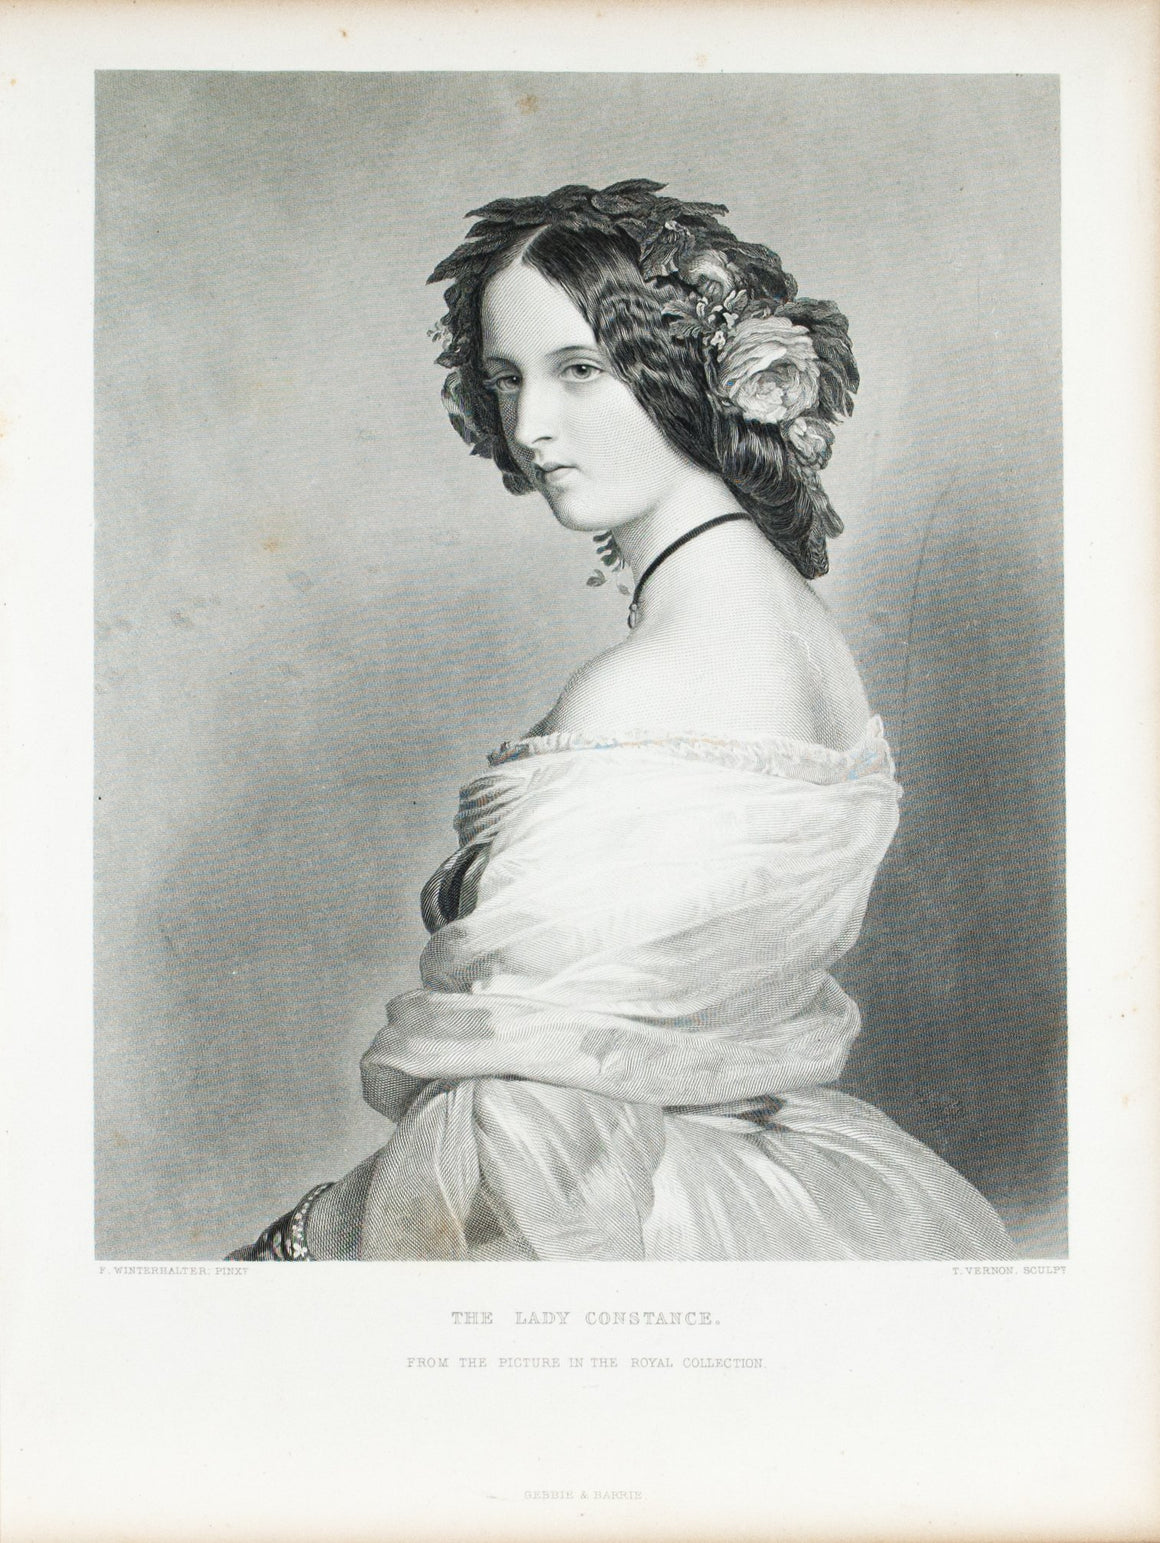 The Lady Constance Beautiful Victorian Lady c. 1880 Engraved Art Print